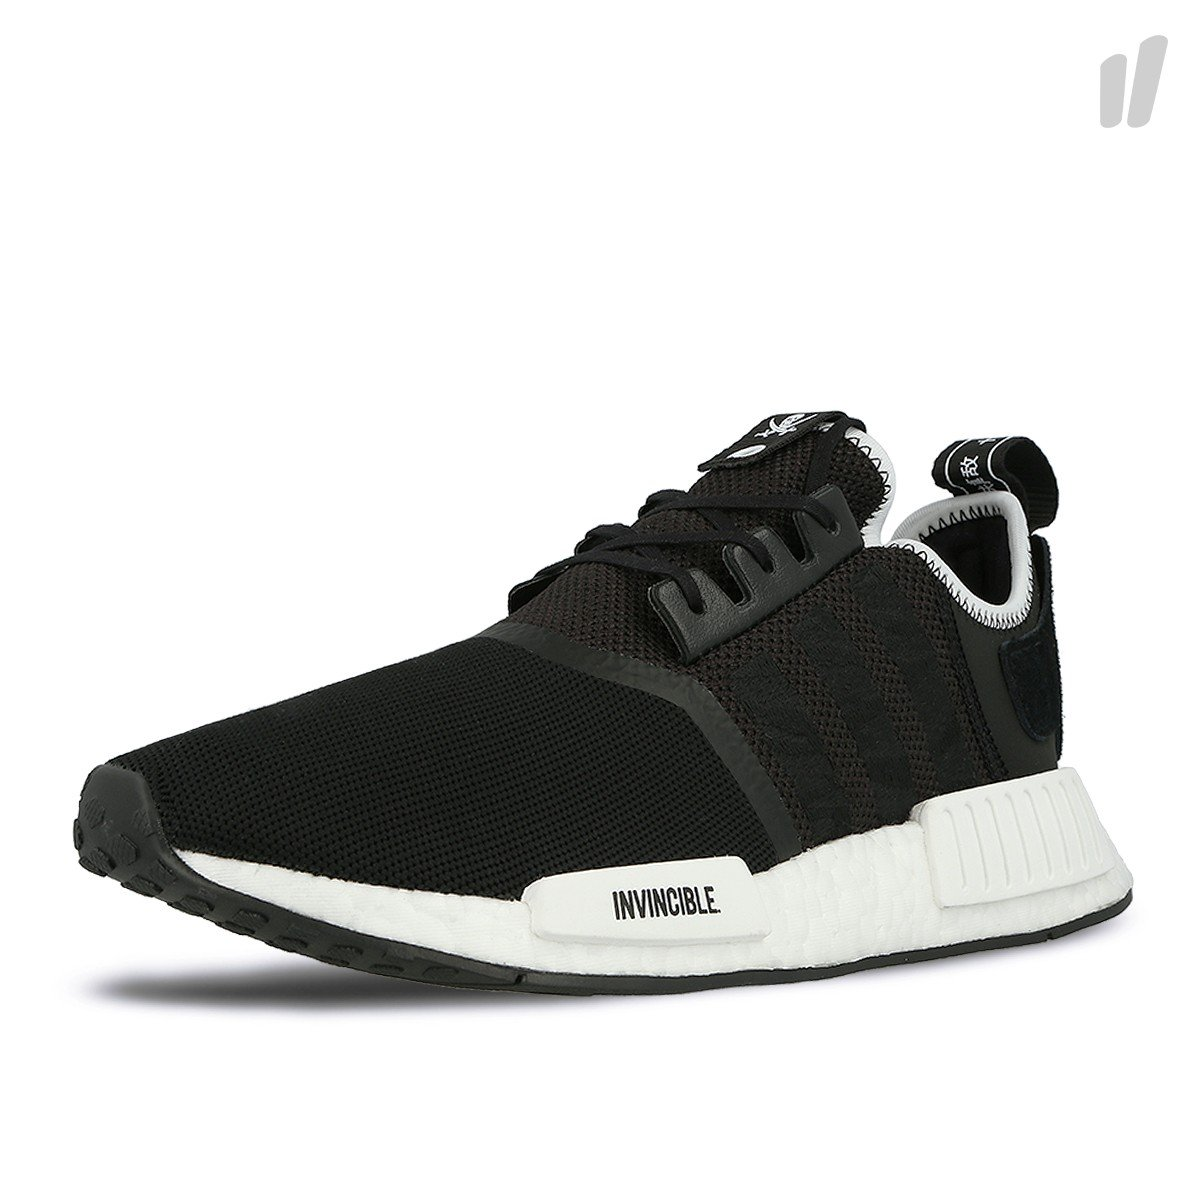 online store bdb35 49c8e Adidas NMD R1 Invincible X Neighborhood CQ1775 Black/White ...